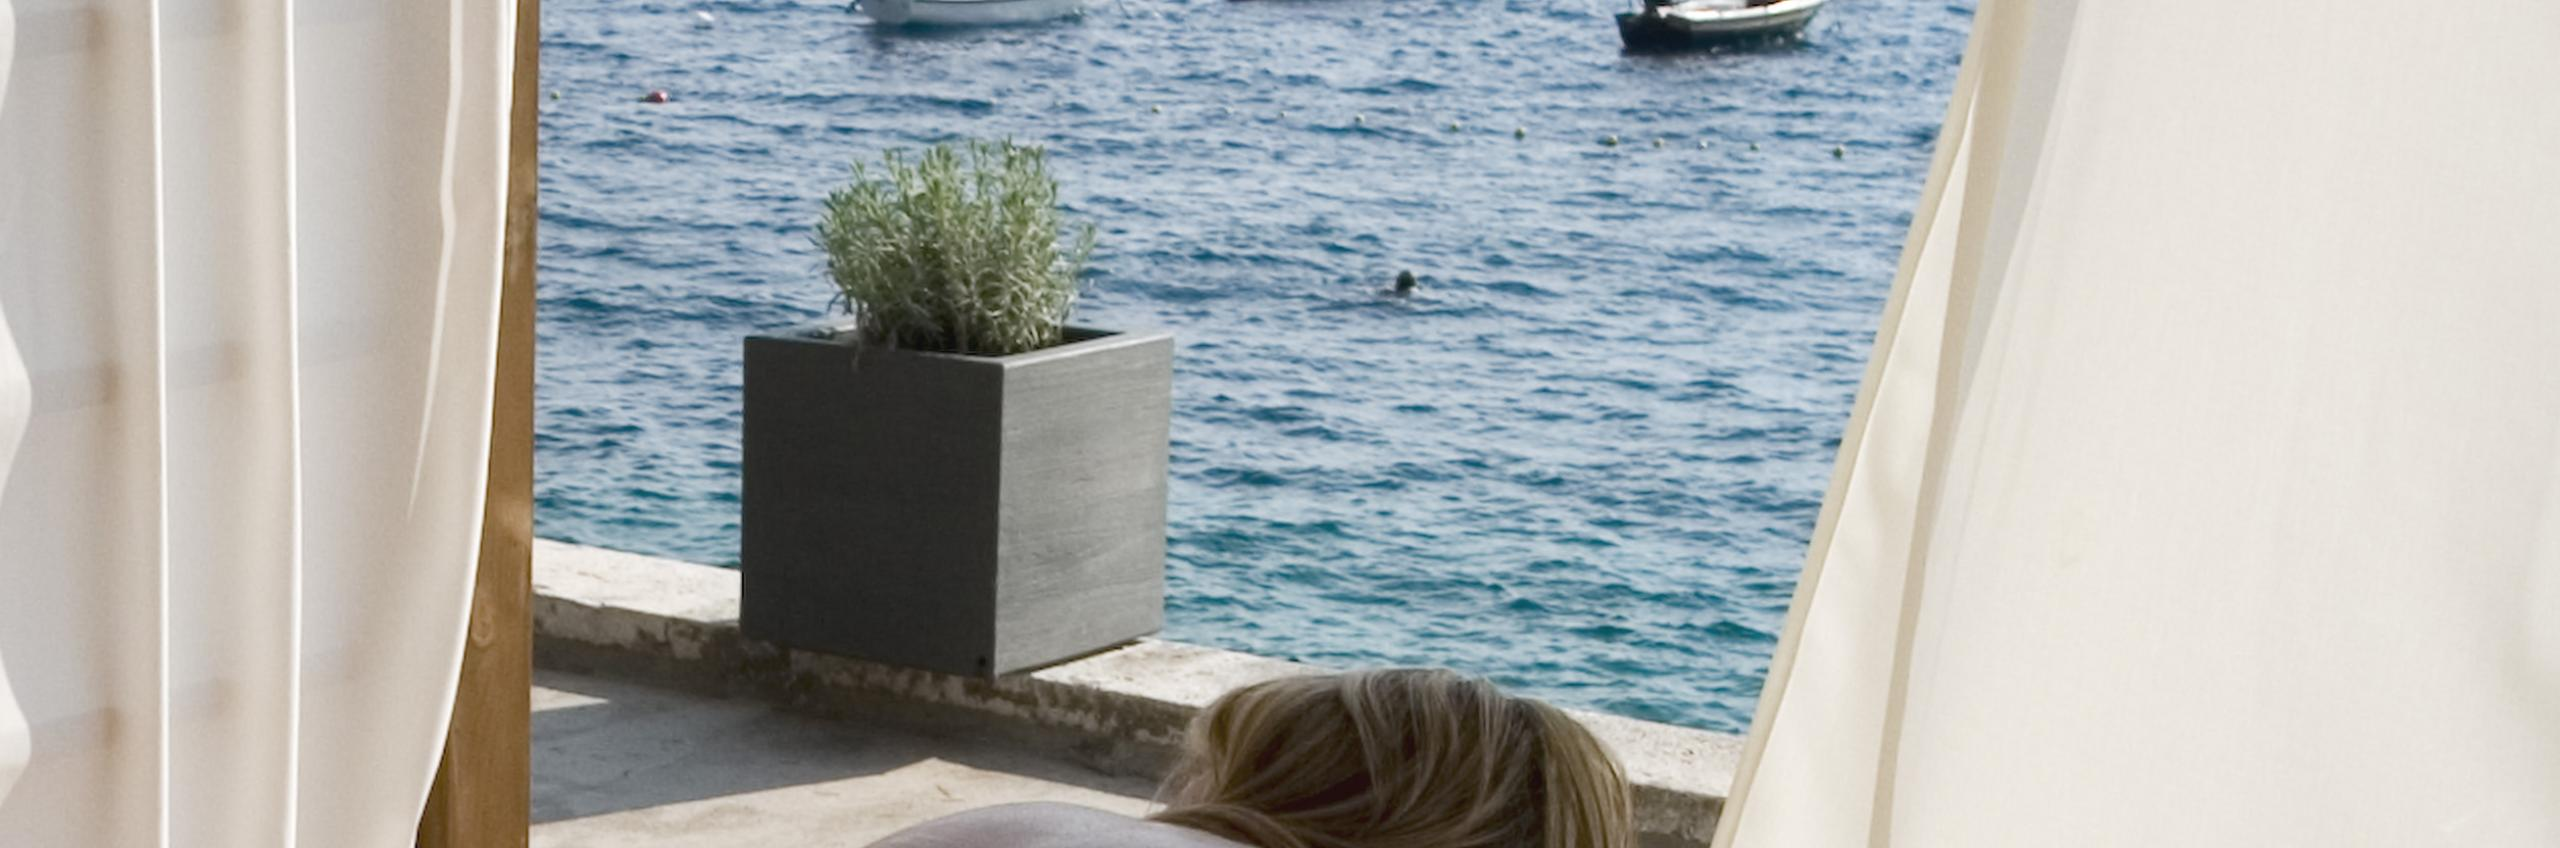 Relax and Unwind with Hvar scent massage